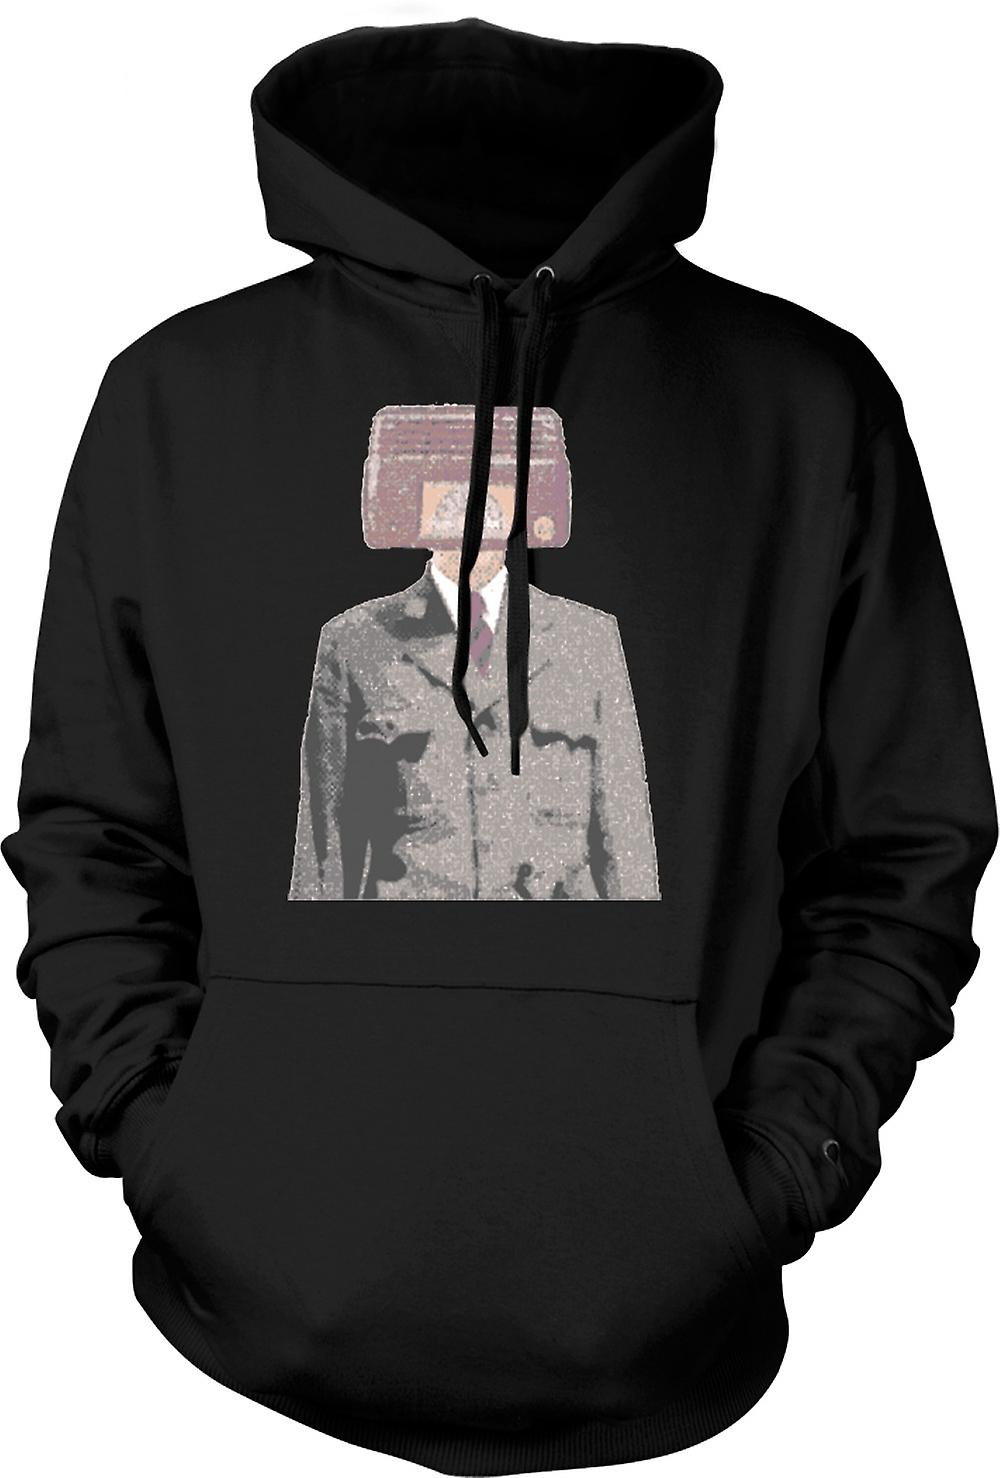 Kids Hoodie - Radiohead - Pop-Art - Design